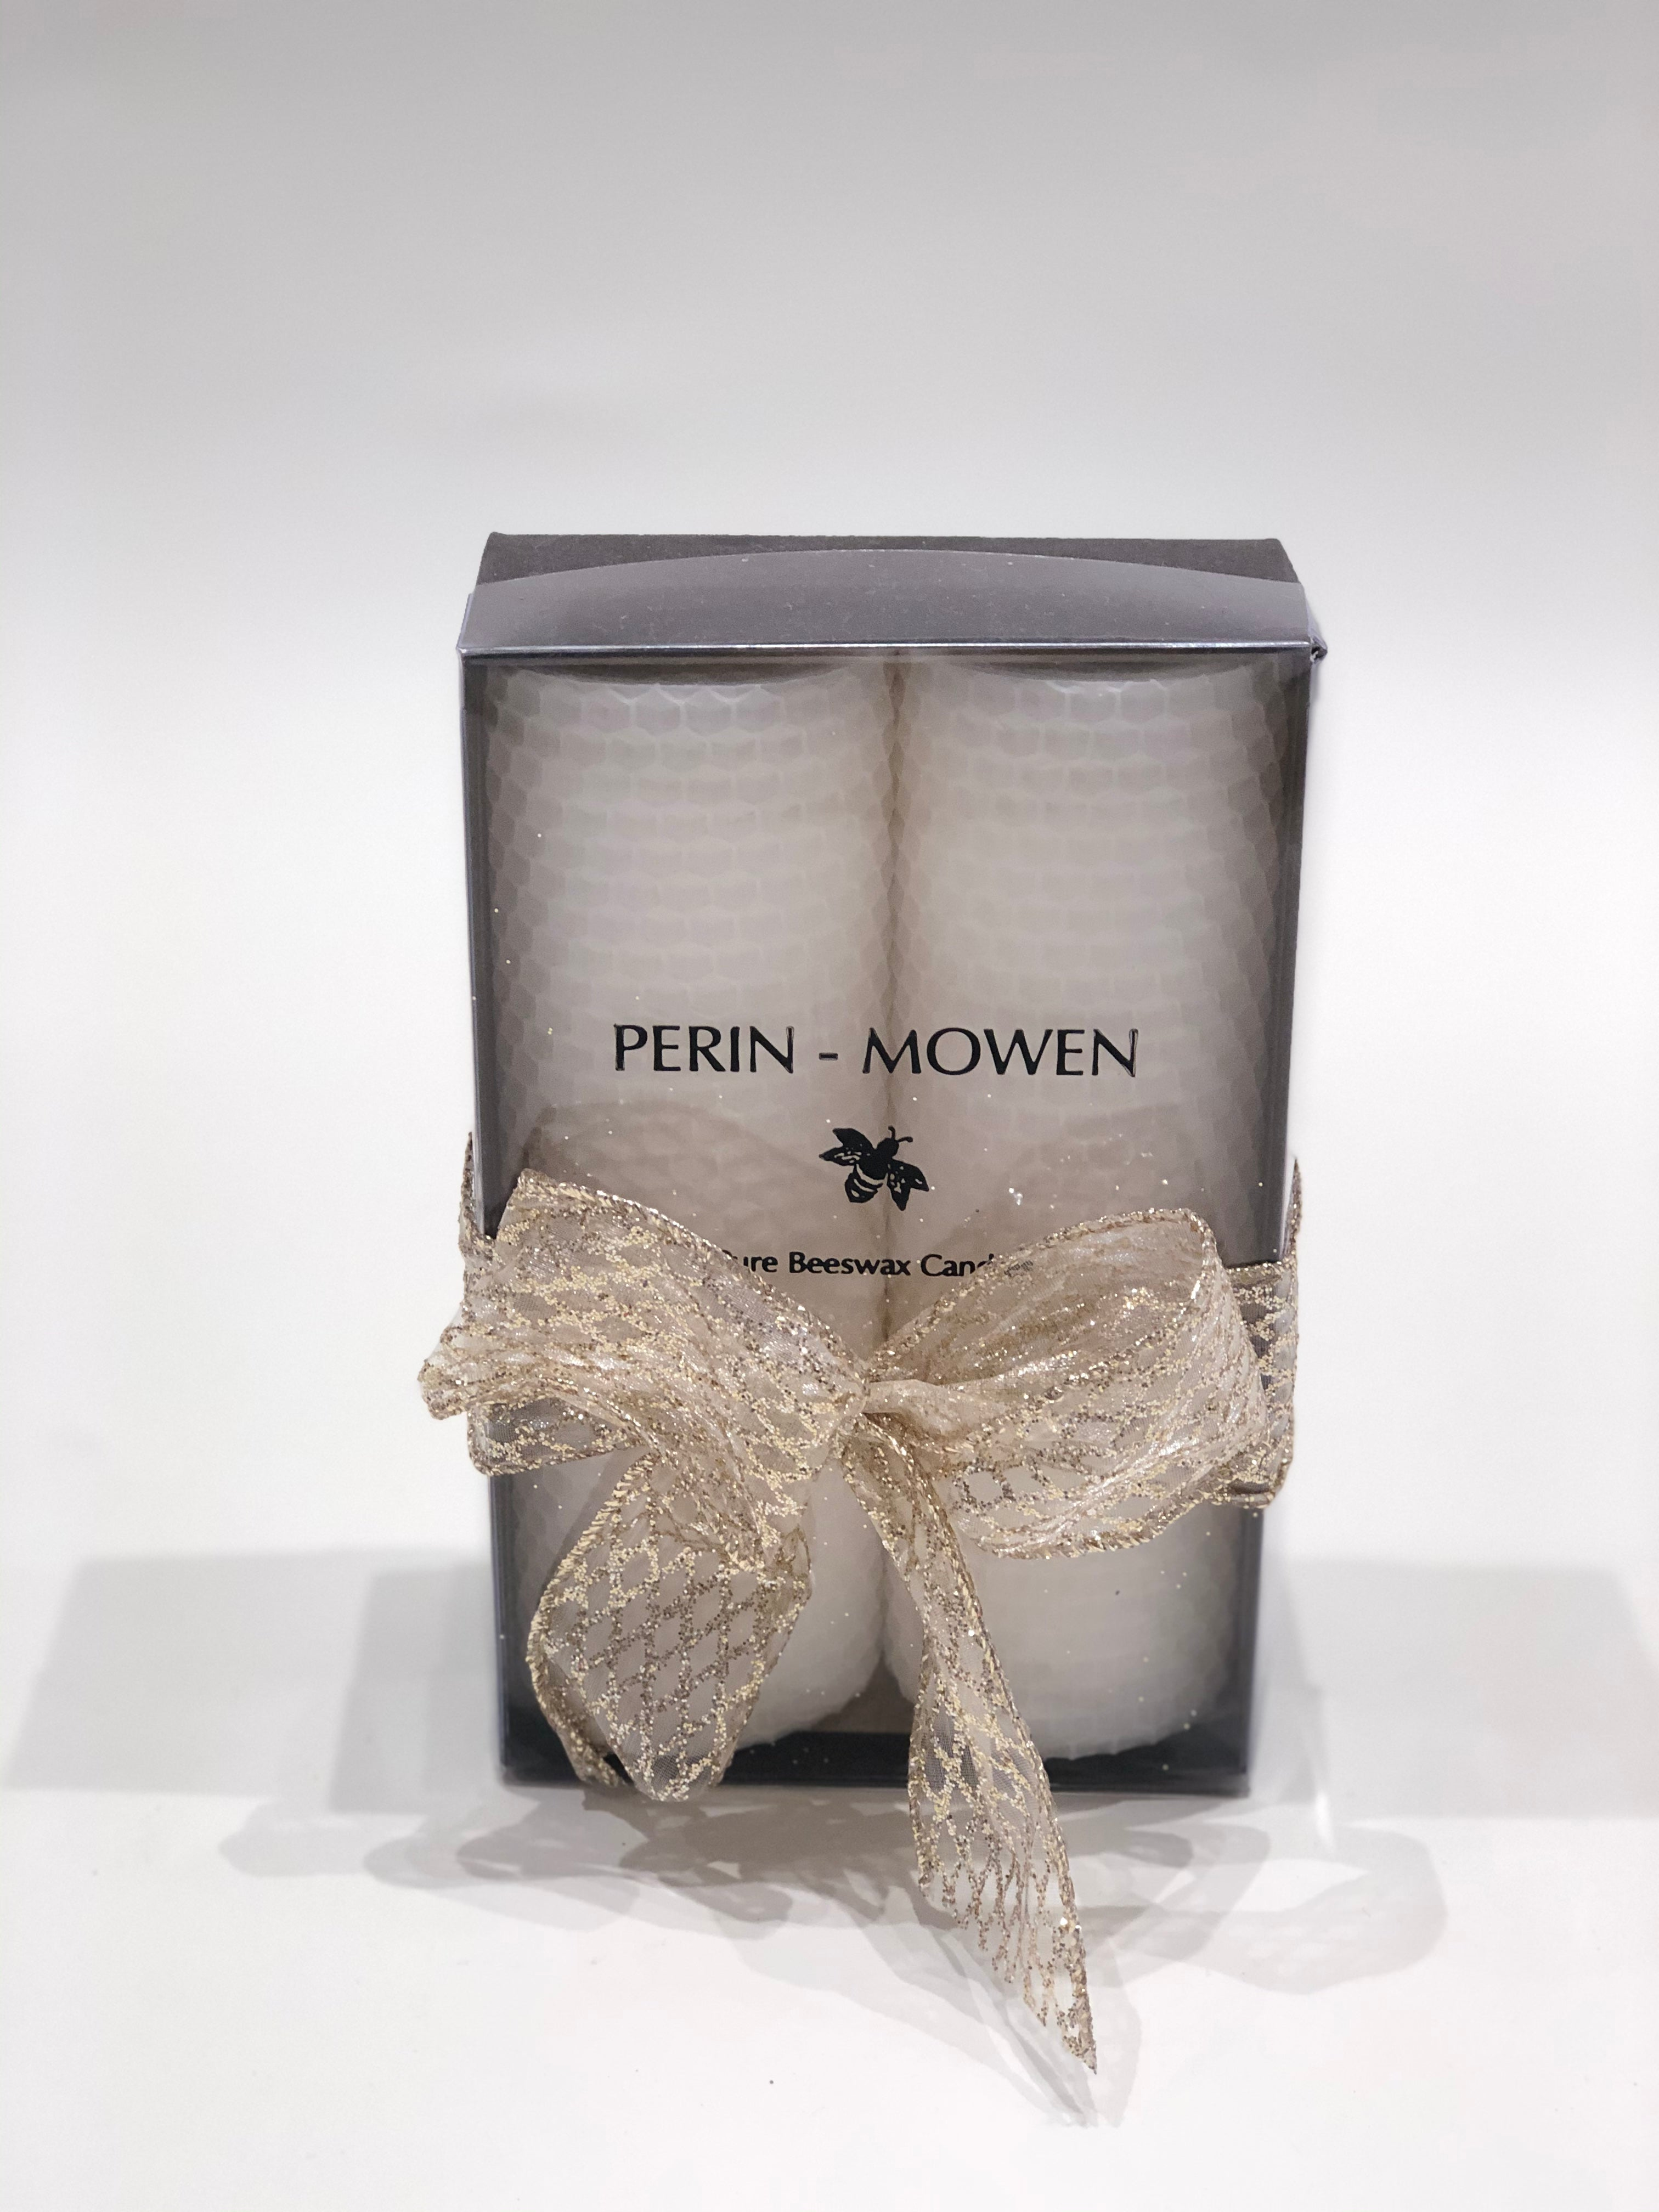 Perin-Mowen Double Pure Beeswax Candle